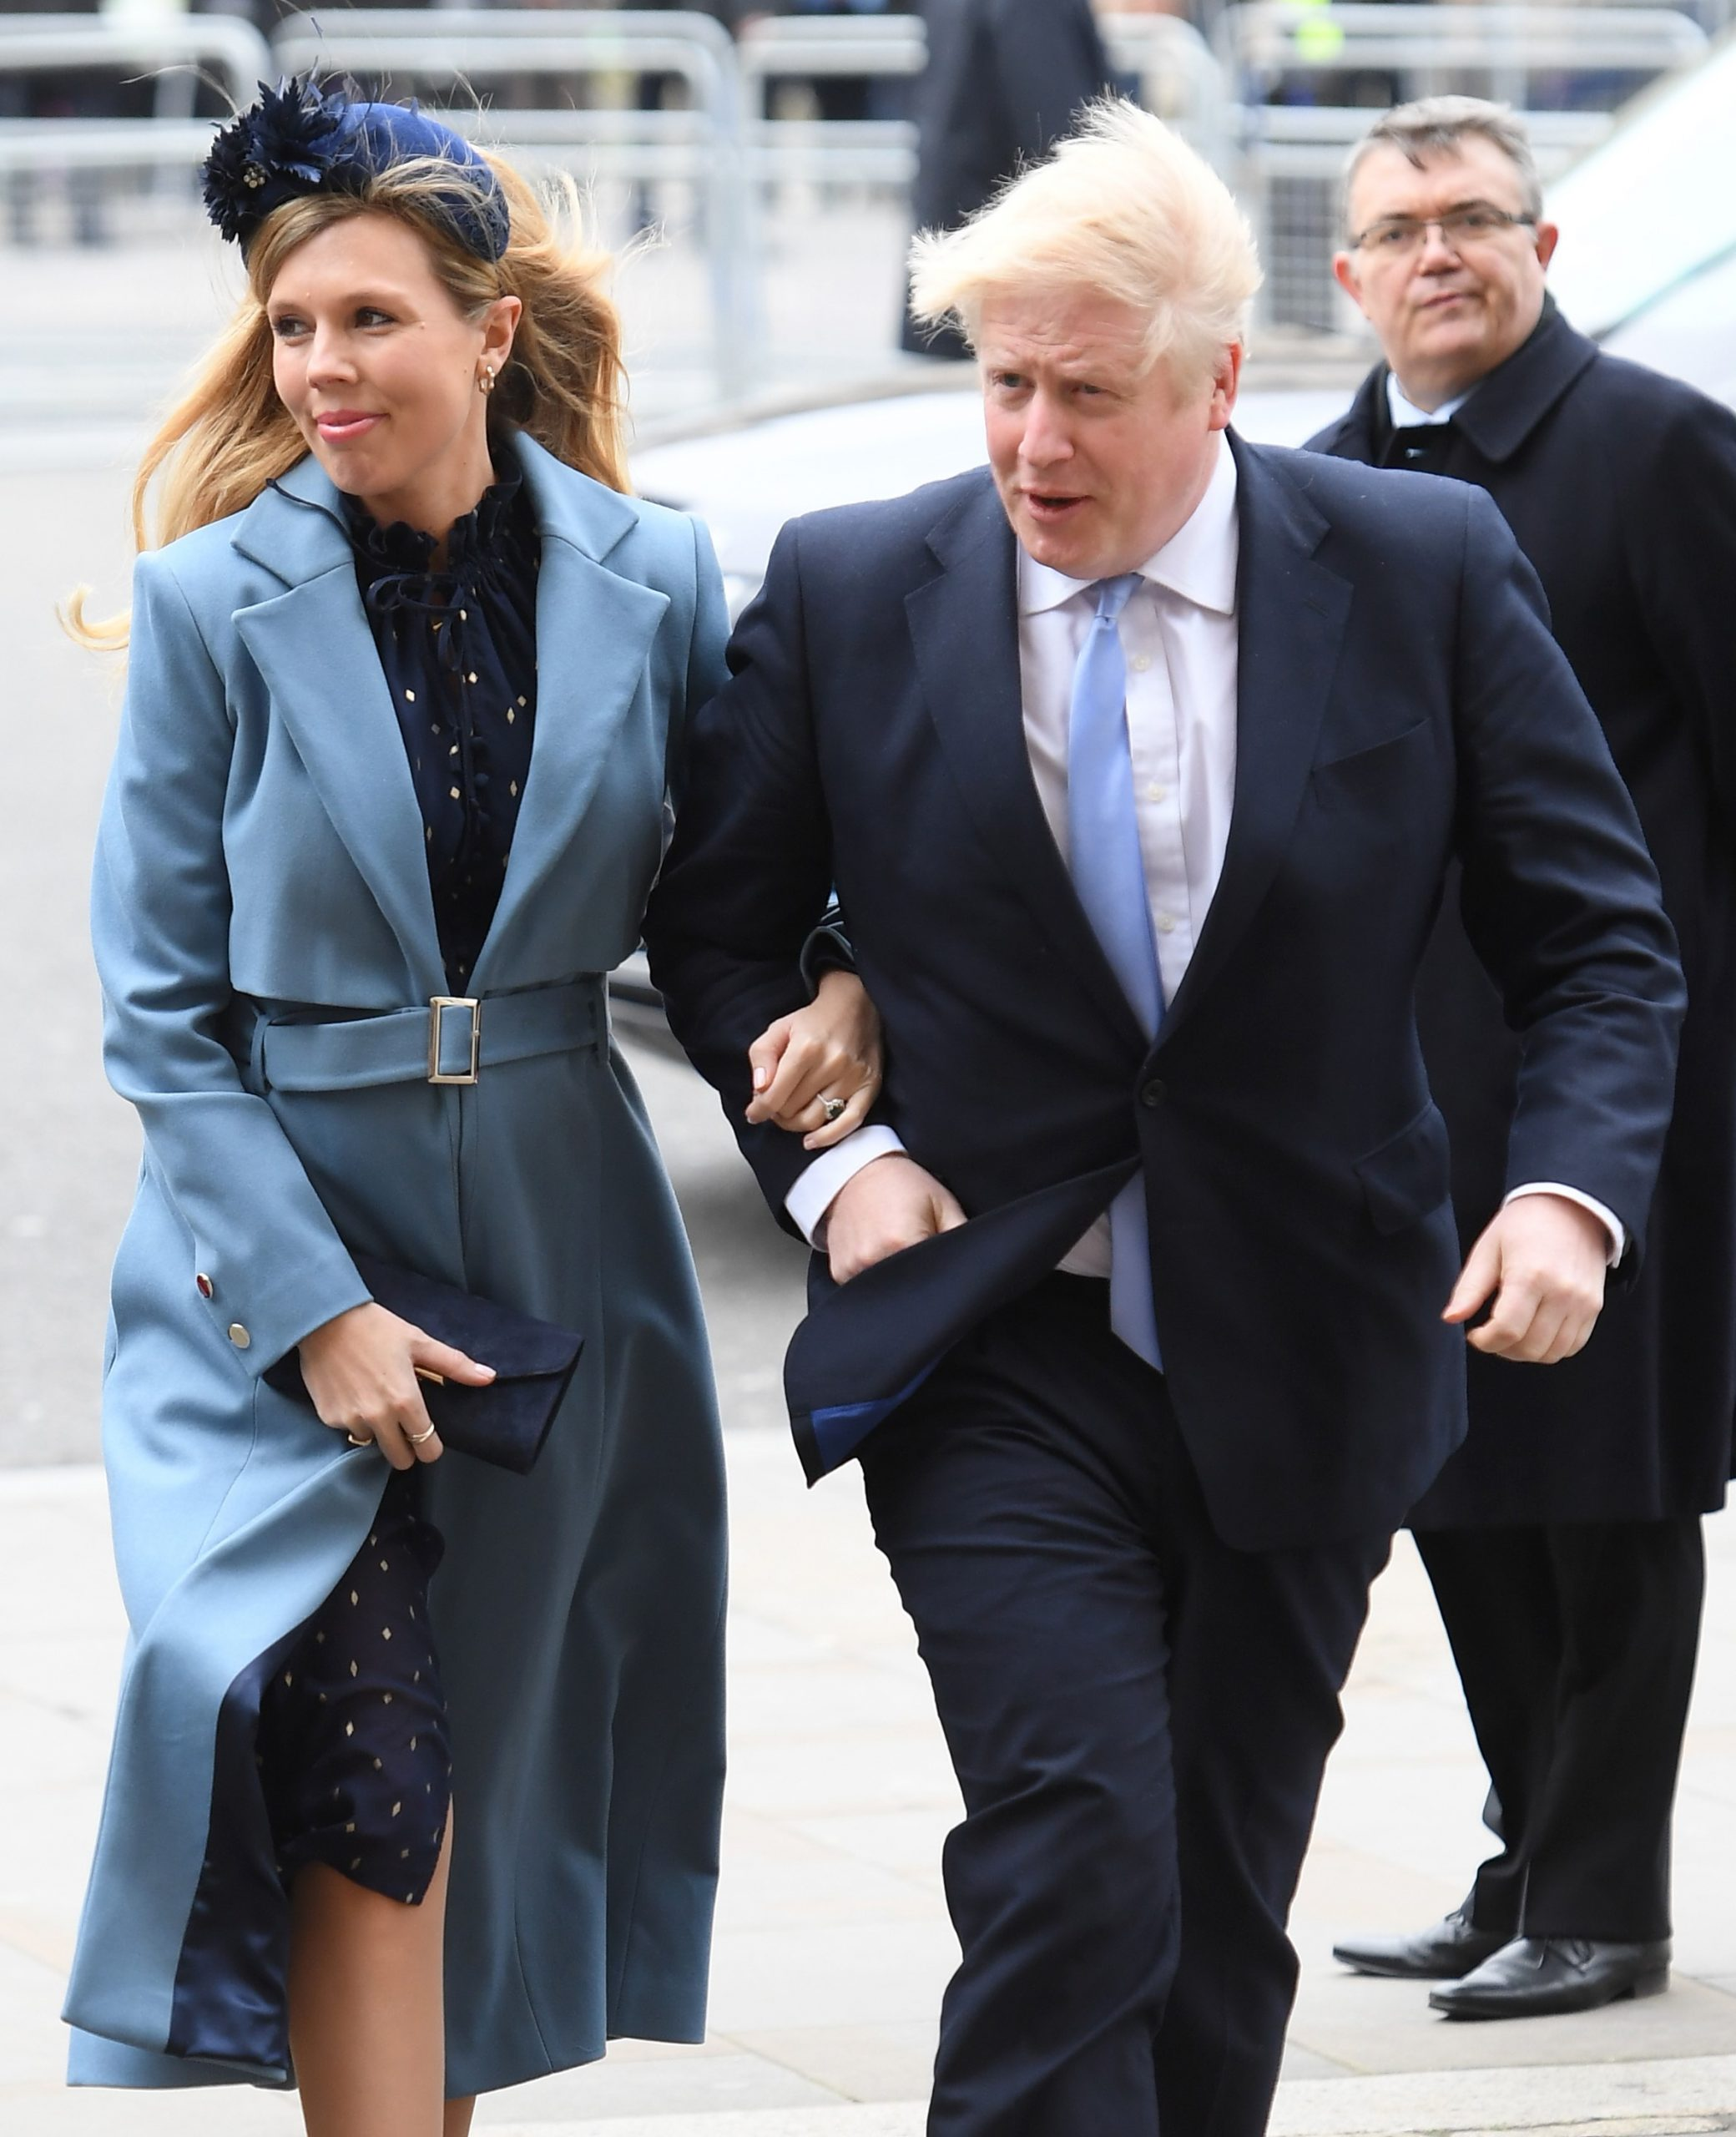 Boris Johnson And Carrie Symonds Arrive At Westminster Abbey For Commonwealth 2020 Celebrations